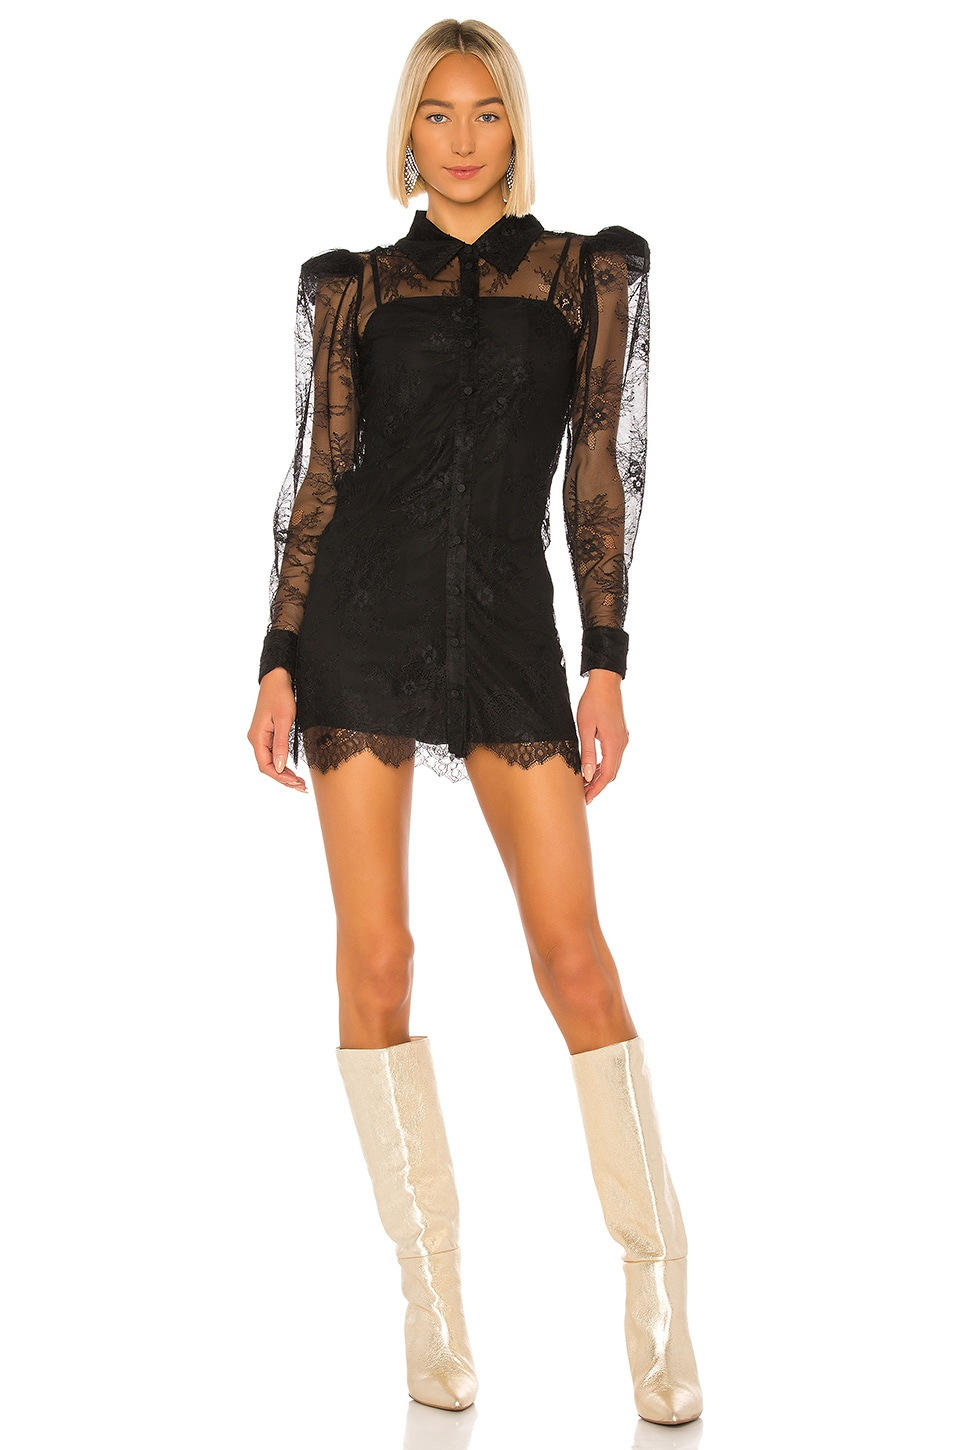 GRLFRND Nadine Mini Dress in Black